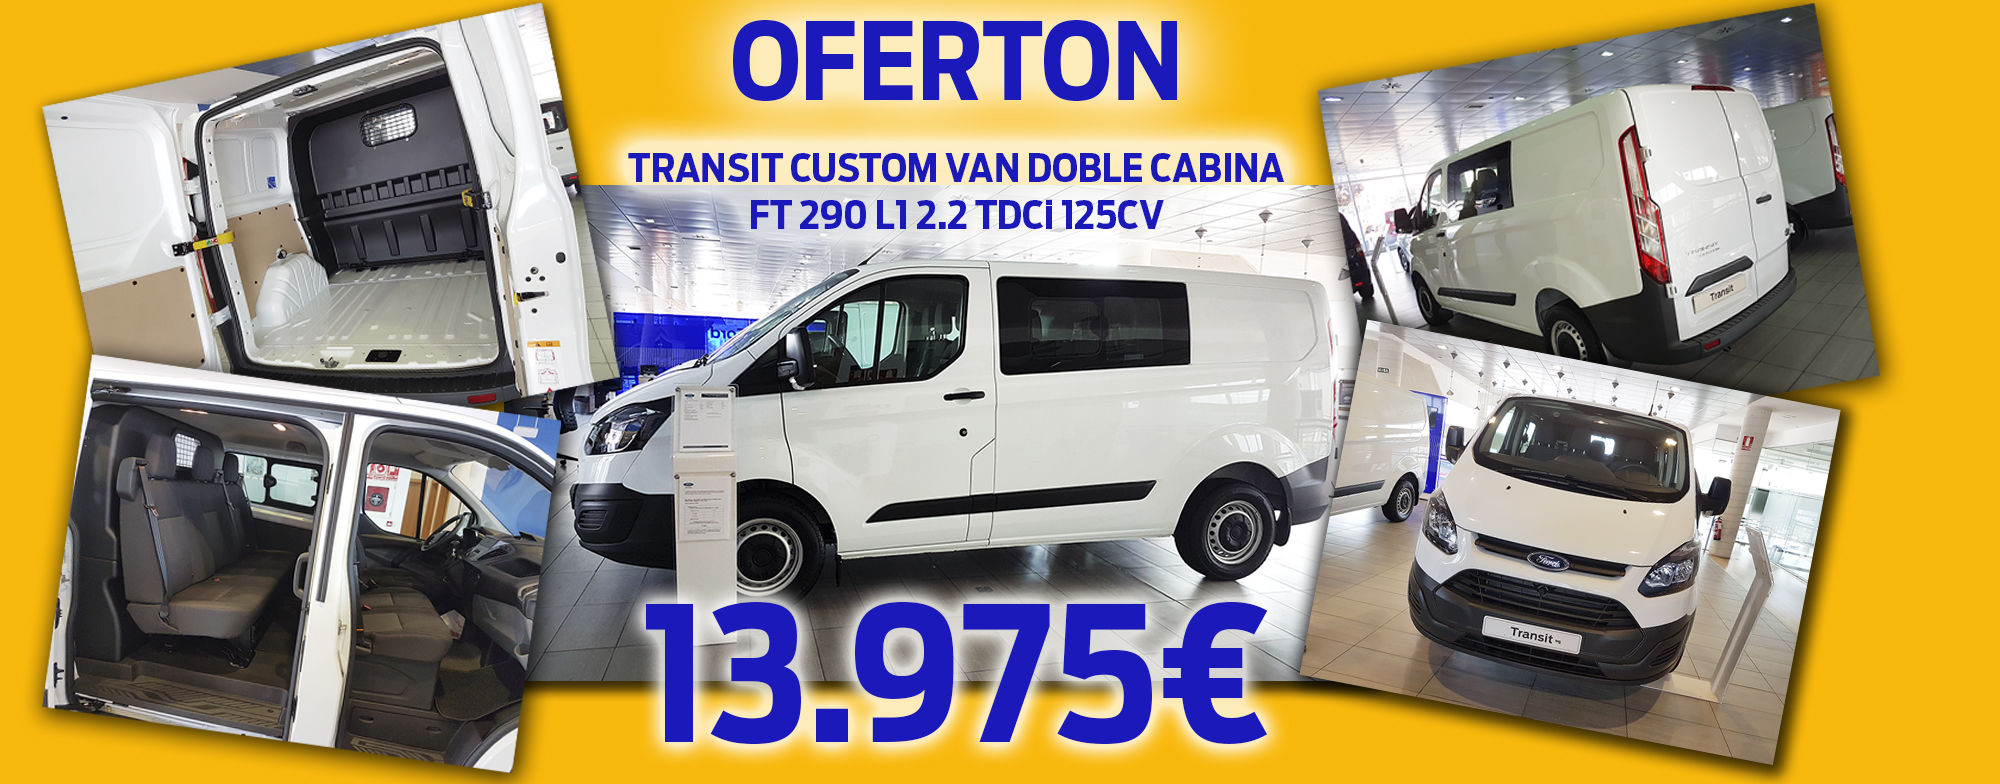 FORD TRANSIT CUSTOM VAN DOBLE CABINA  FT 290 L1 2.2 TDCi 125CV 13.975 €